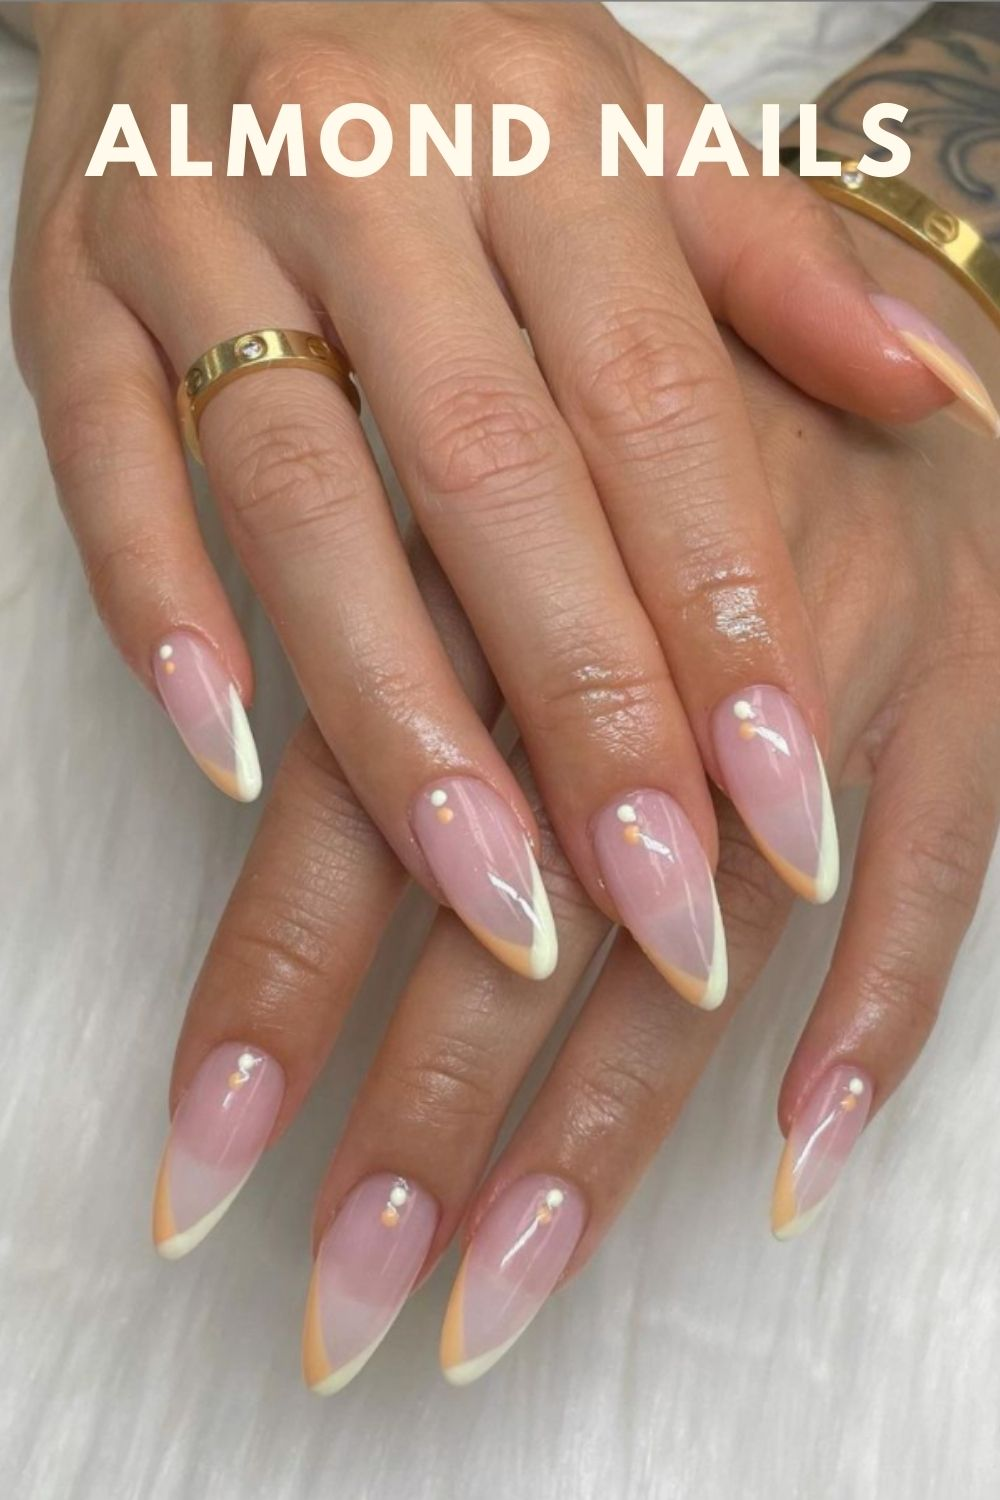 Almond-Shaped Nails  for Autumn Nails 2021